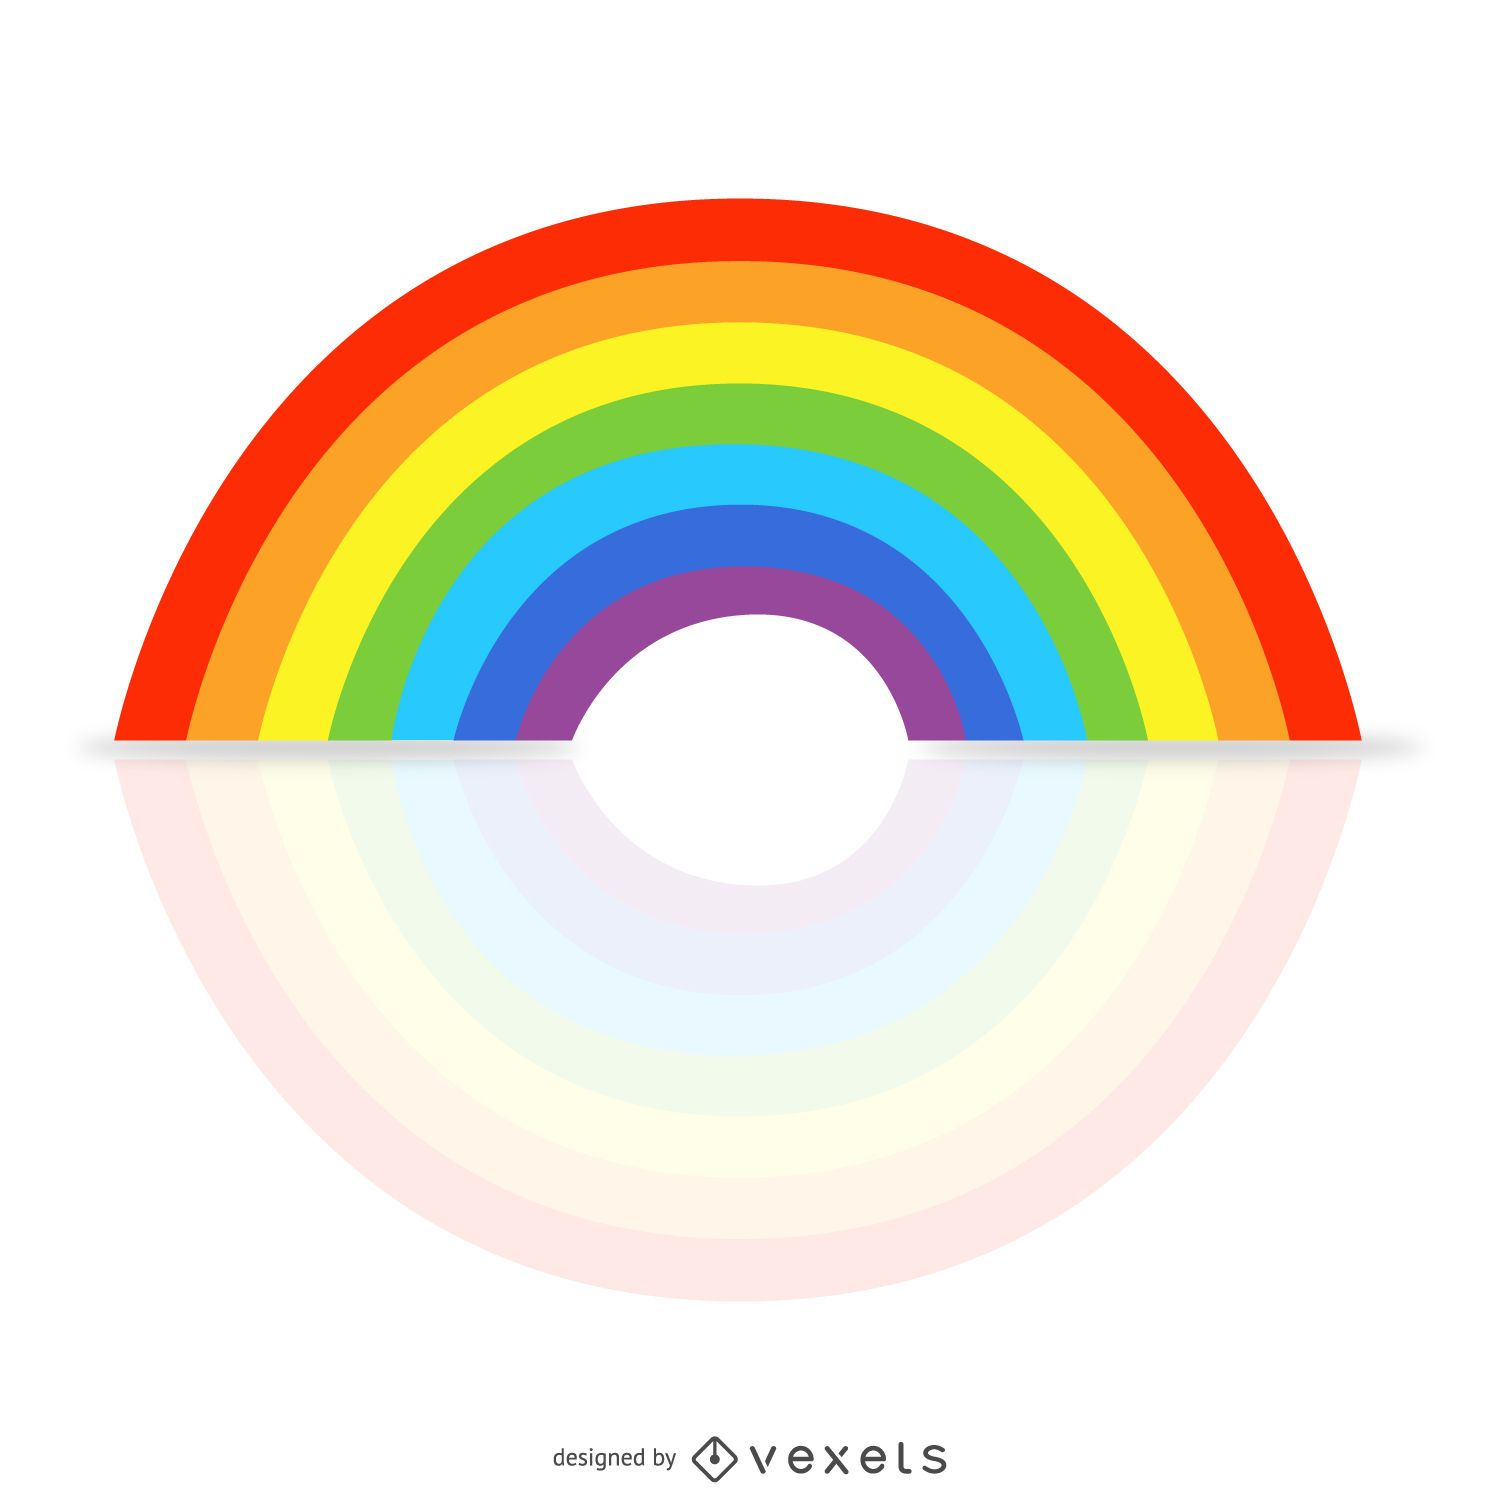 Simple rainbow illustration with reflection - Vector download